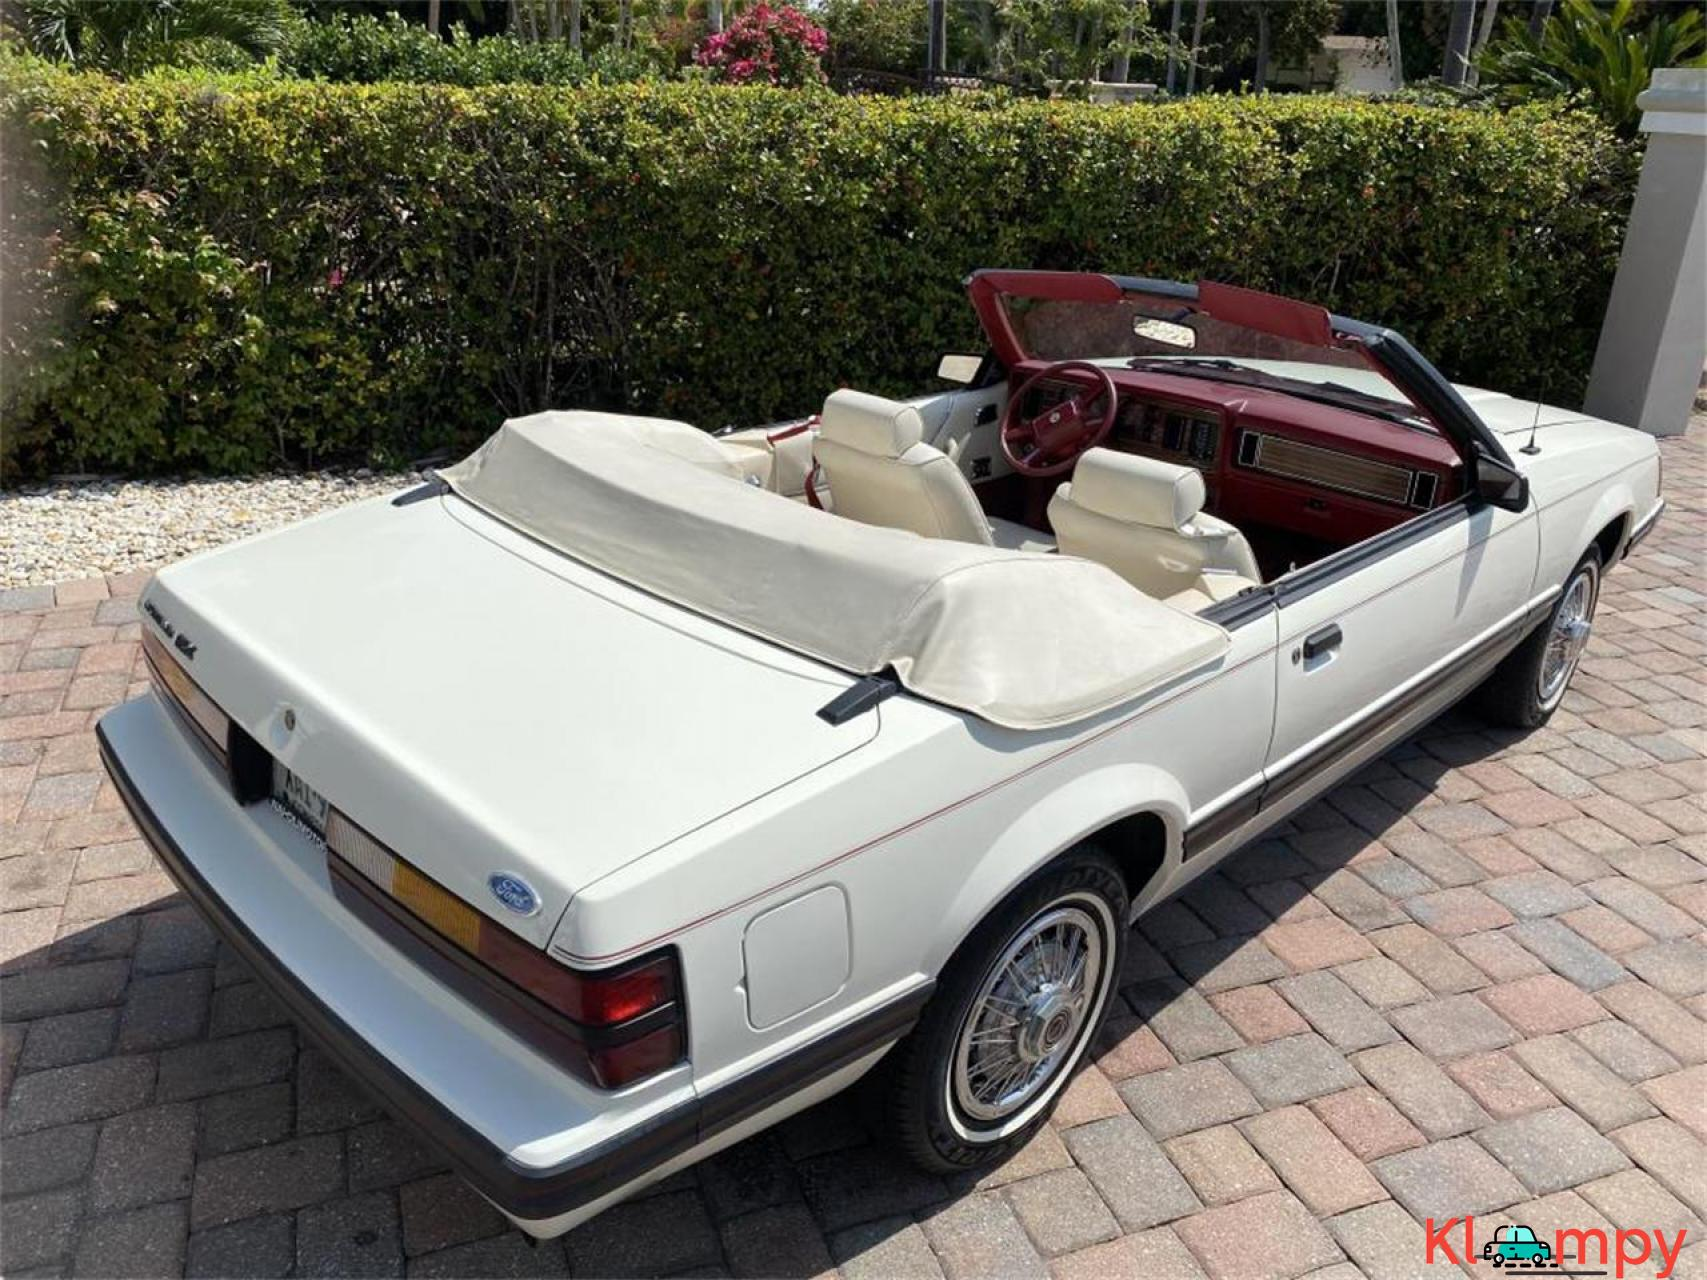 1983 Ford Mustang 3.8 LITRE V6 AUTO - 5/20